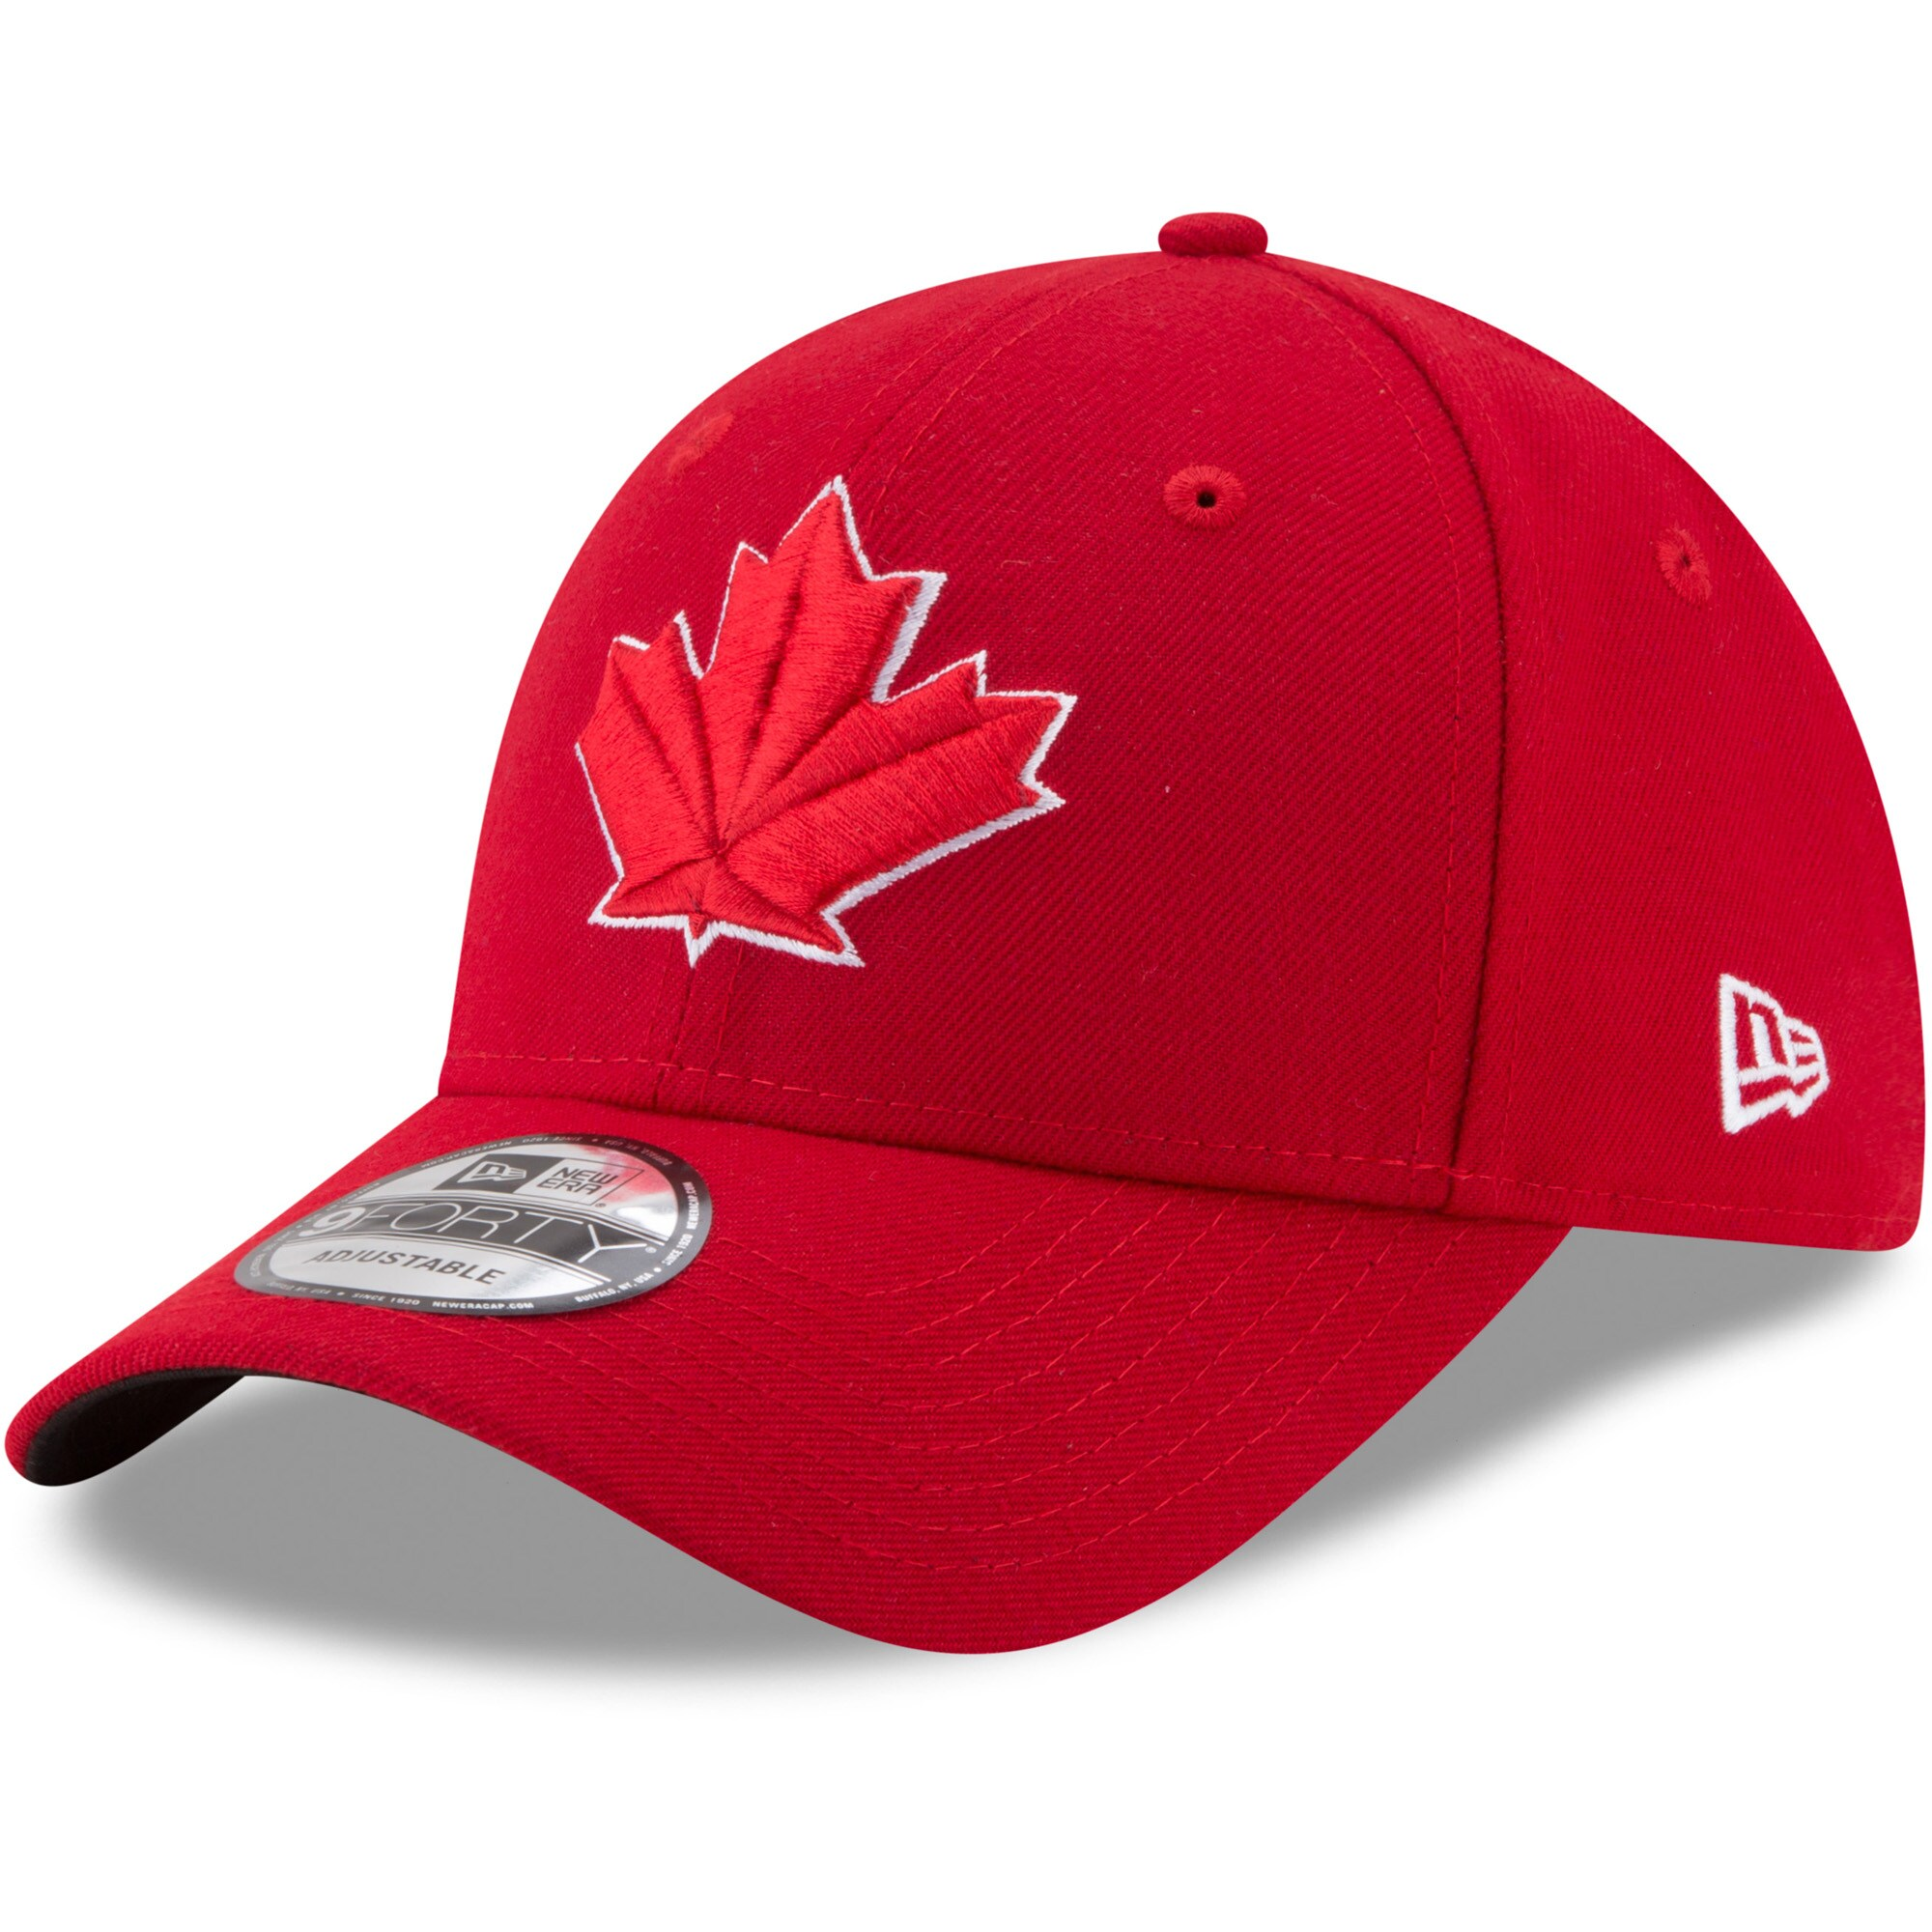 Toronto Blue Jays New Era Alternate 2 The League 9FORTY Adjustable Hat - Red